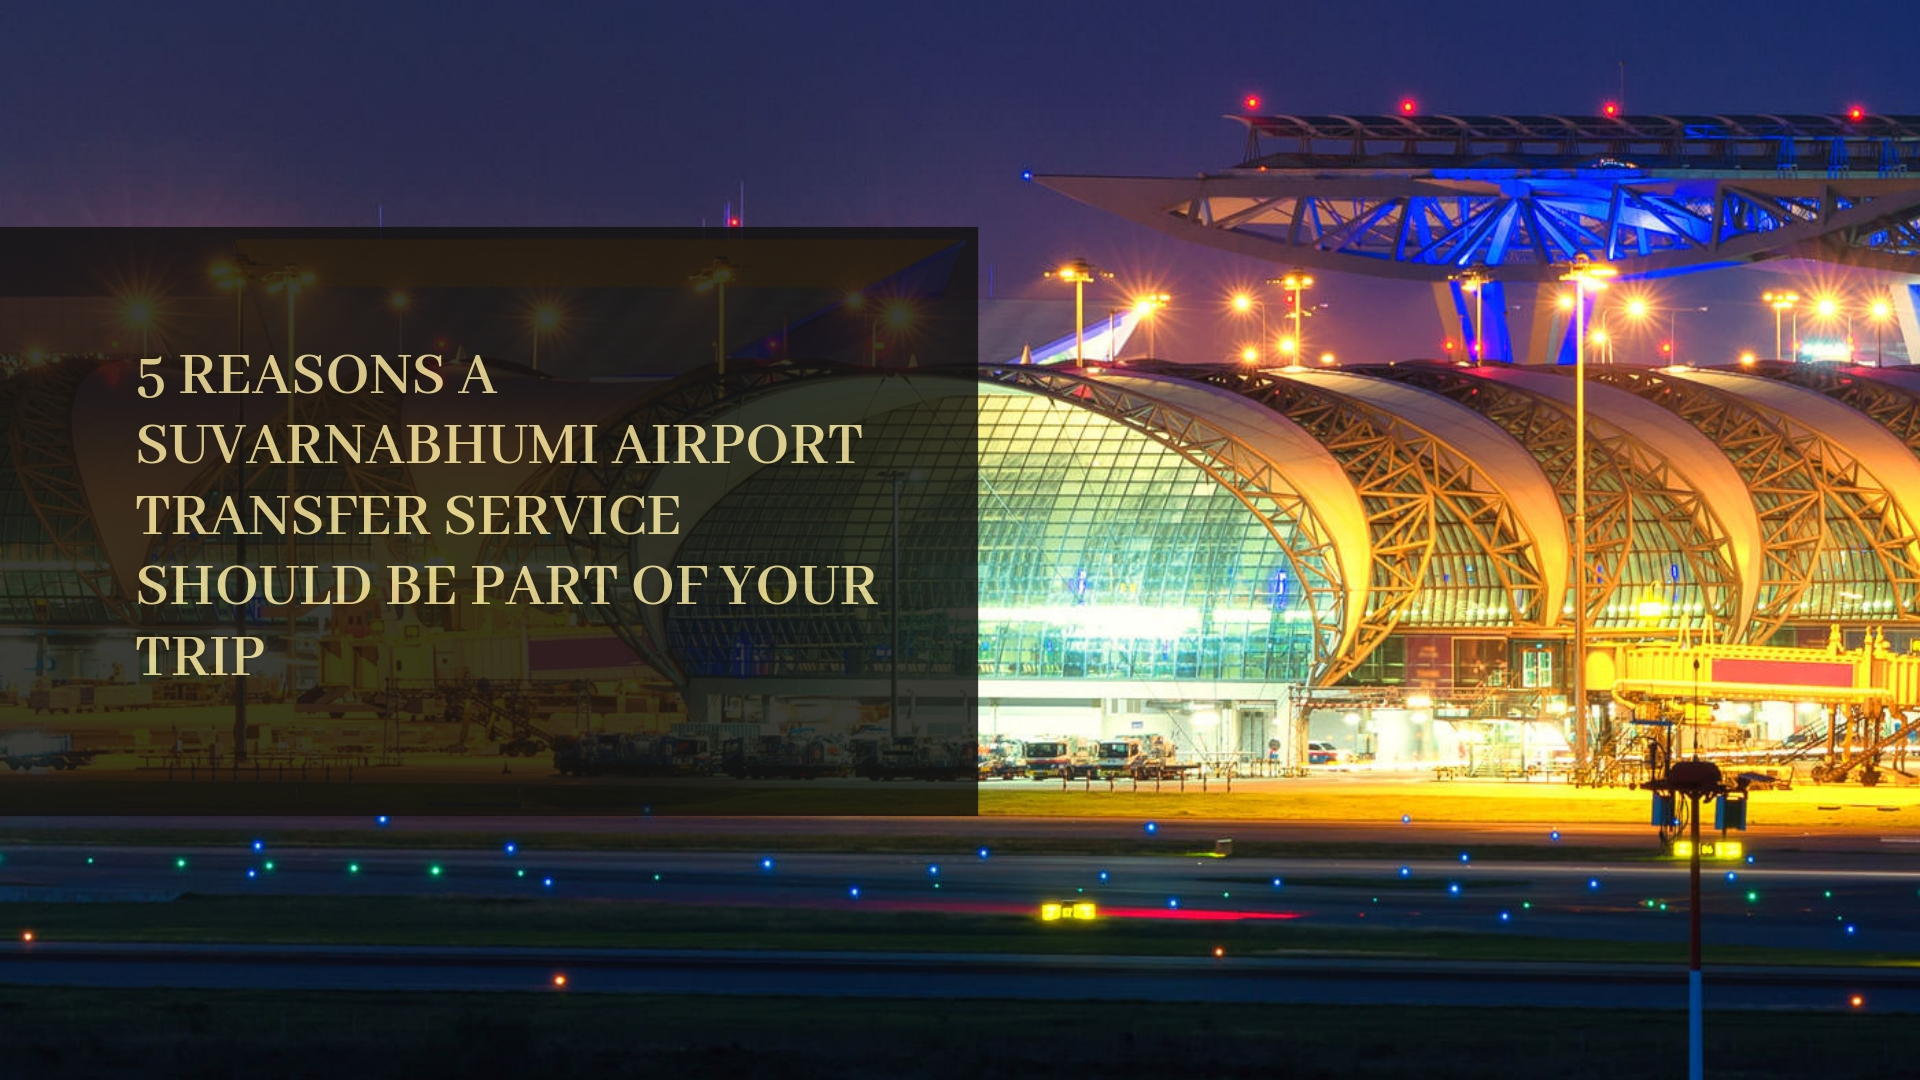 Image of 5 Reasons a Suvarnabhumi Bangkok Airport Transfer Service should be part of your trip